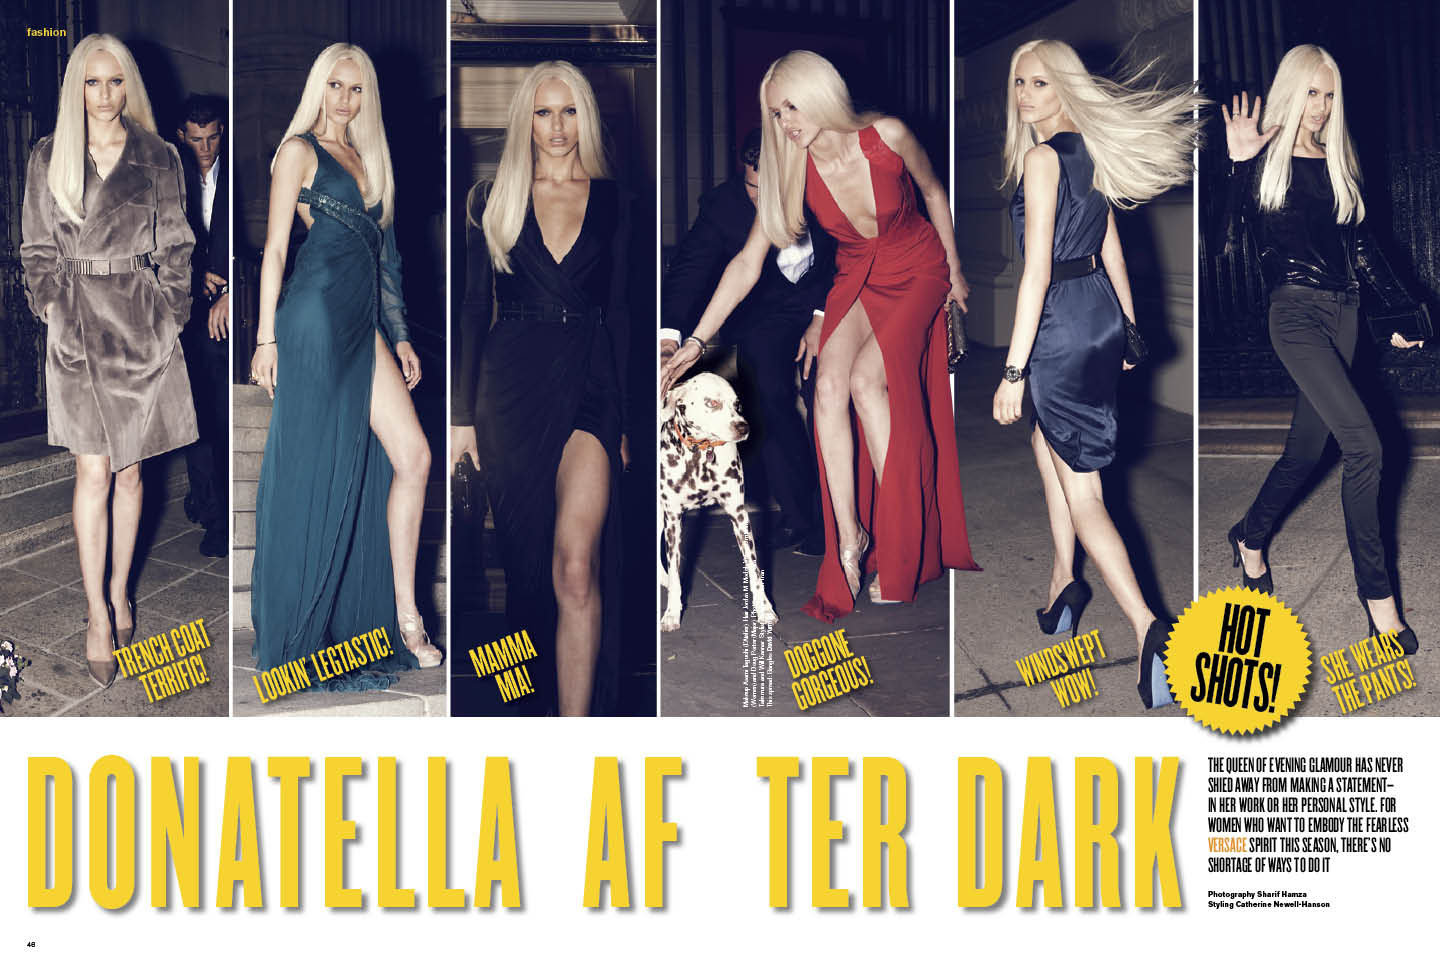 Donatella_After_Drak_for_V_Magazine-1